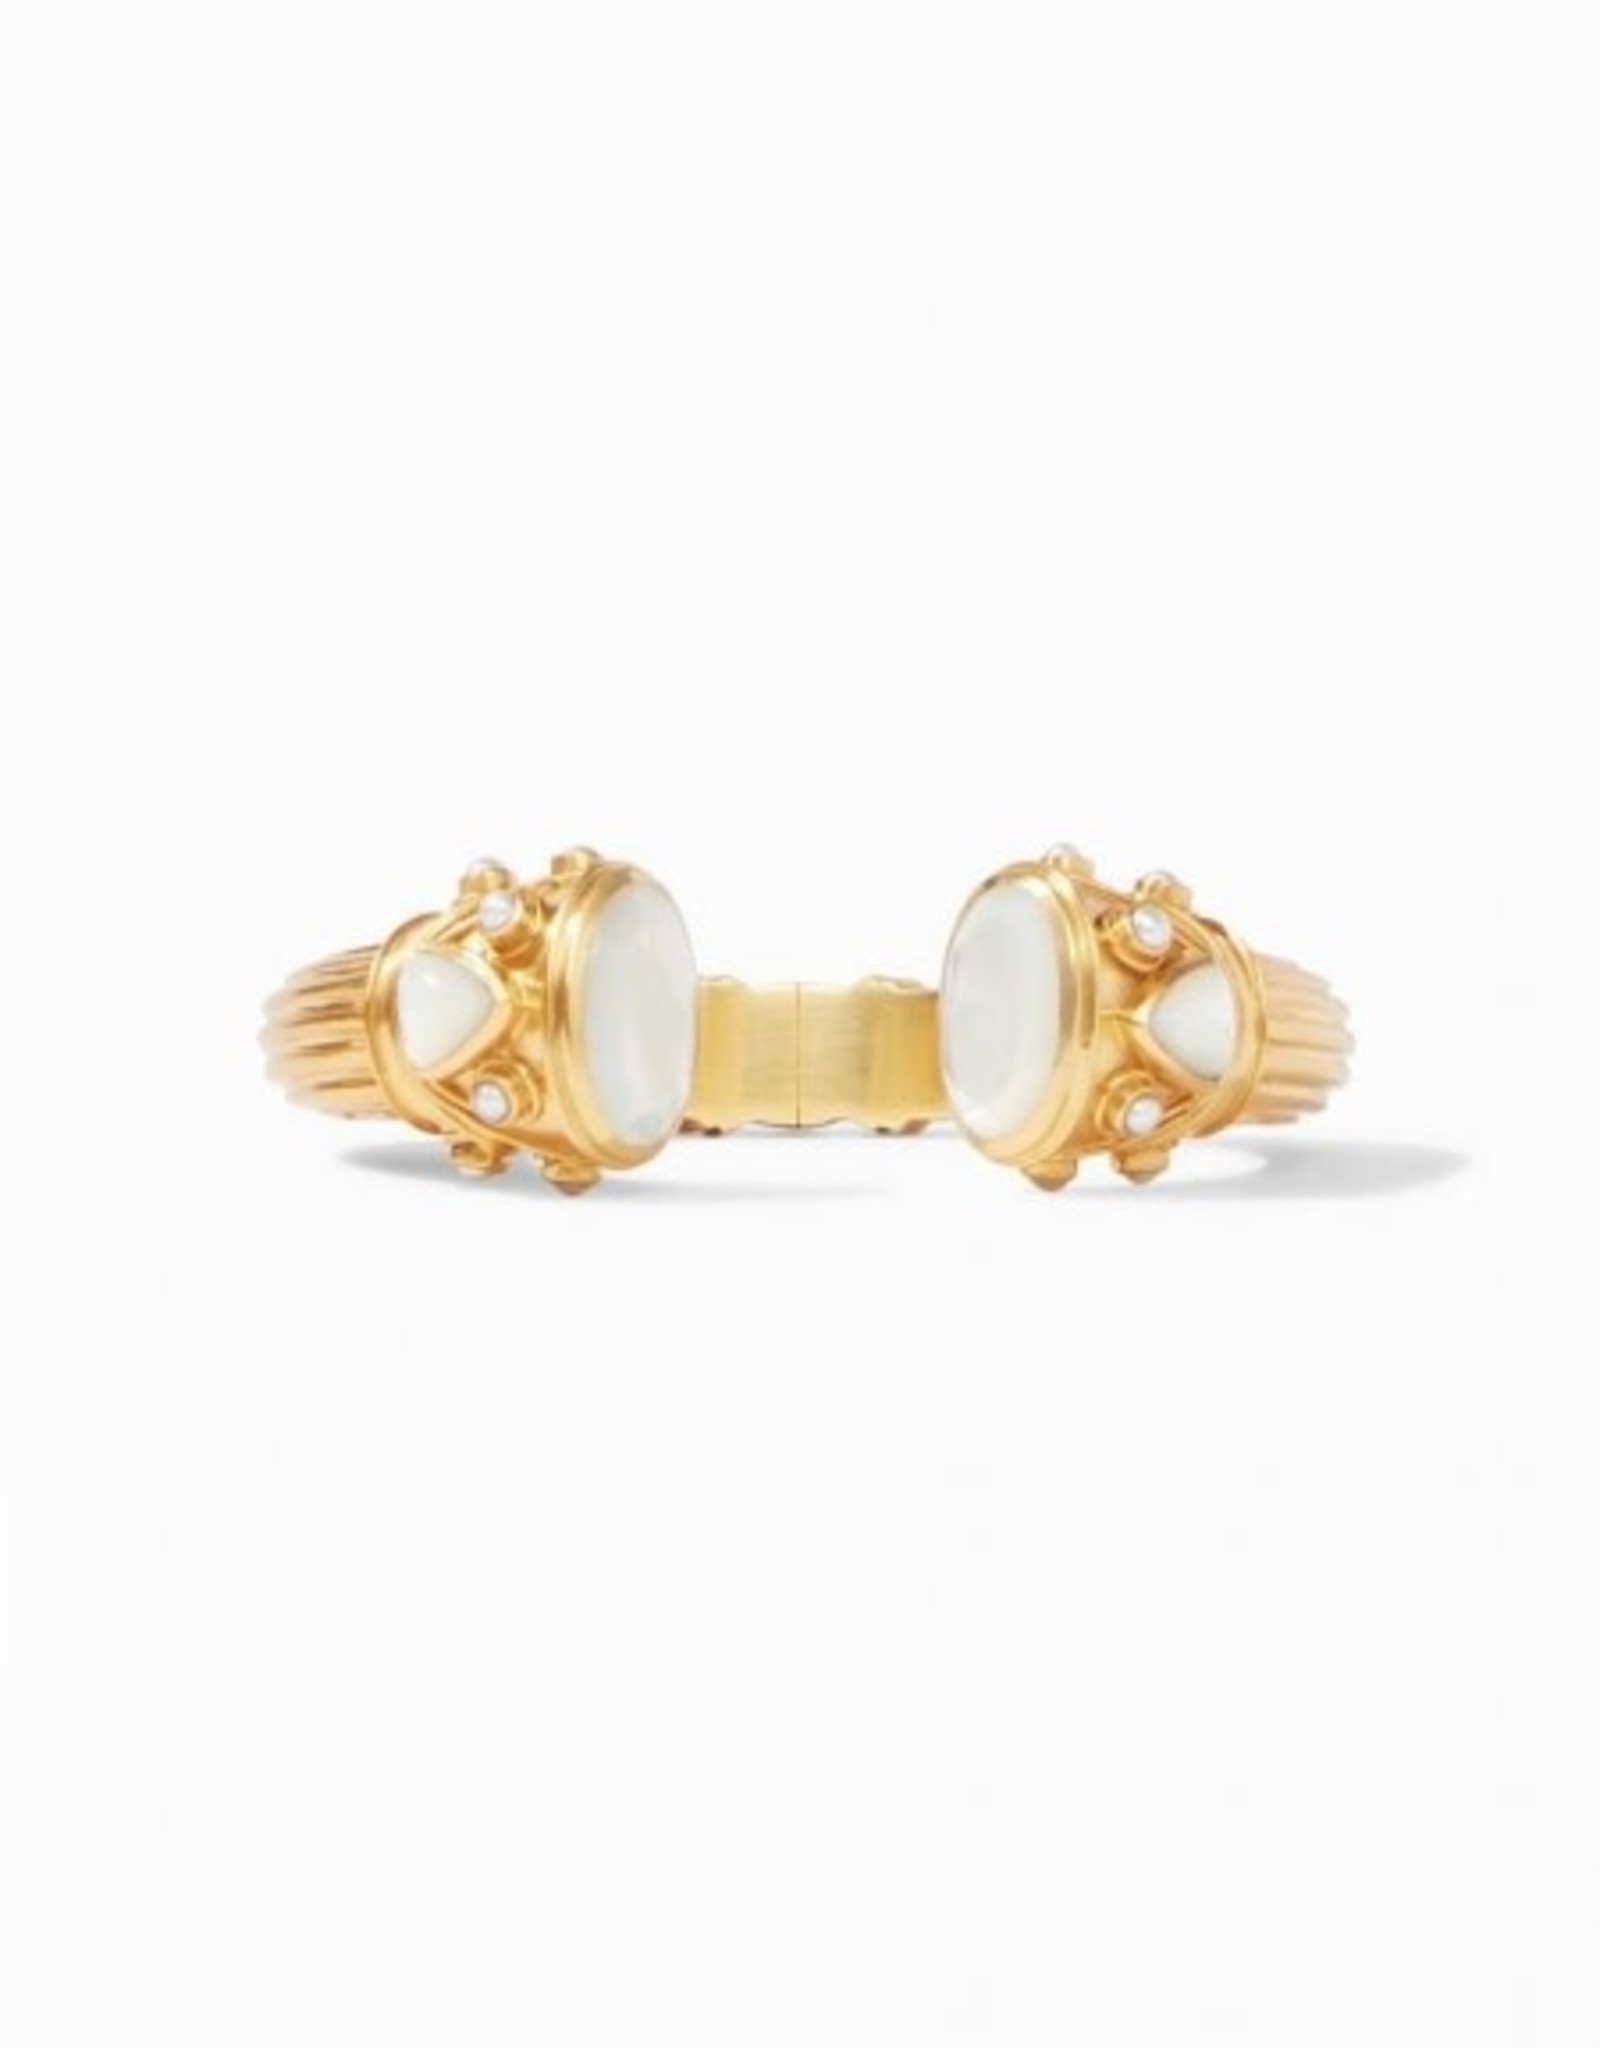 Julie Vos Byzantine Hinge Cuff Gold Iridescent Clear Crystal Endcaps with Iridescent Cleary Crystal and Pearl Accents